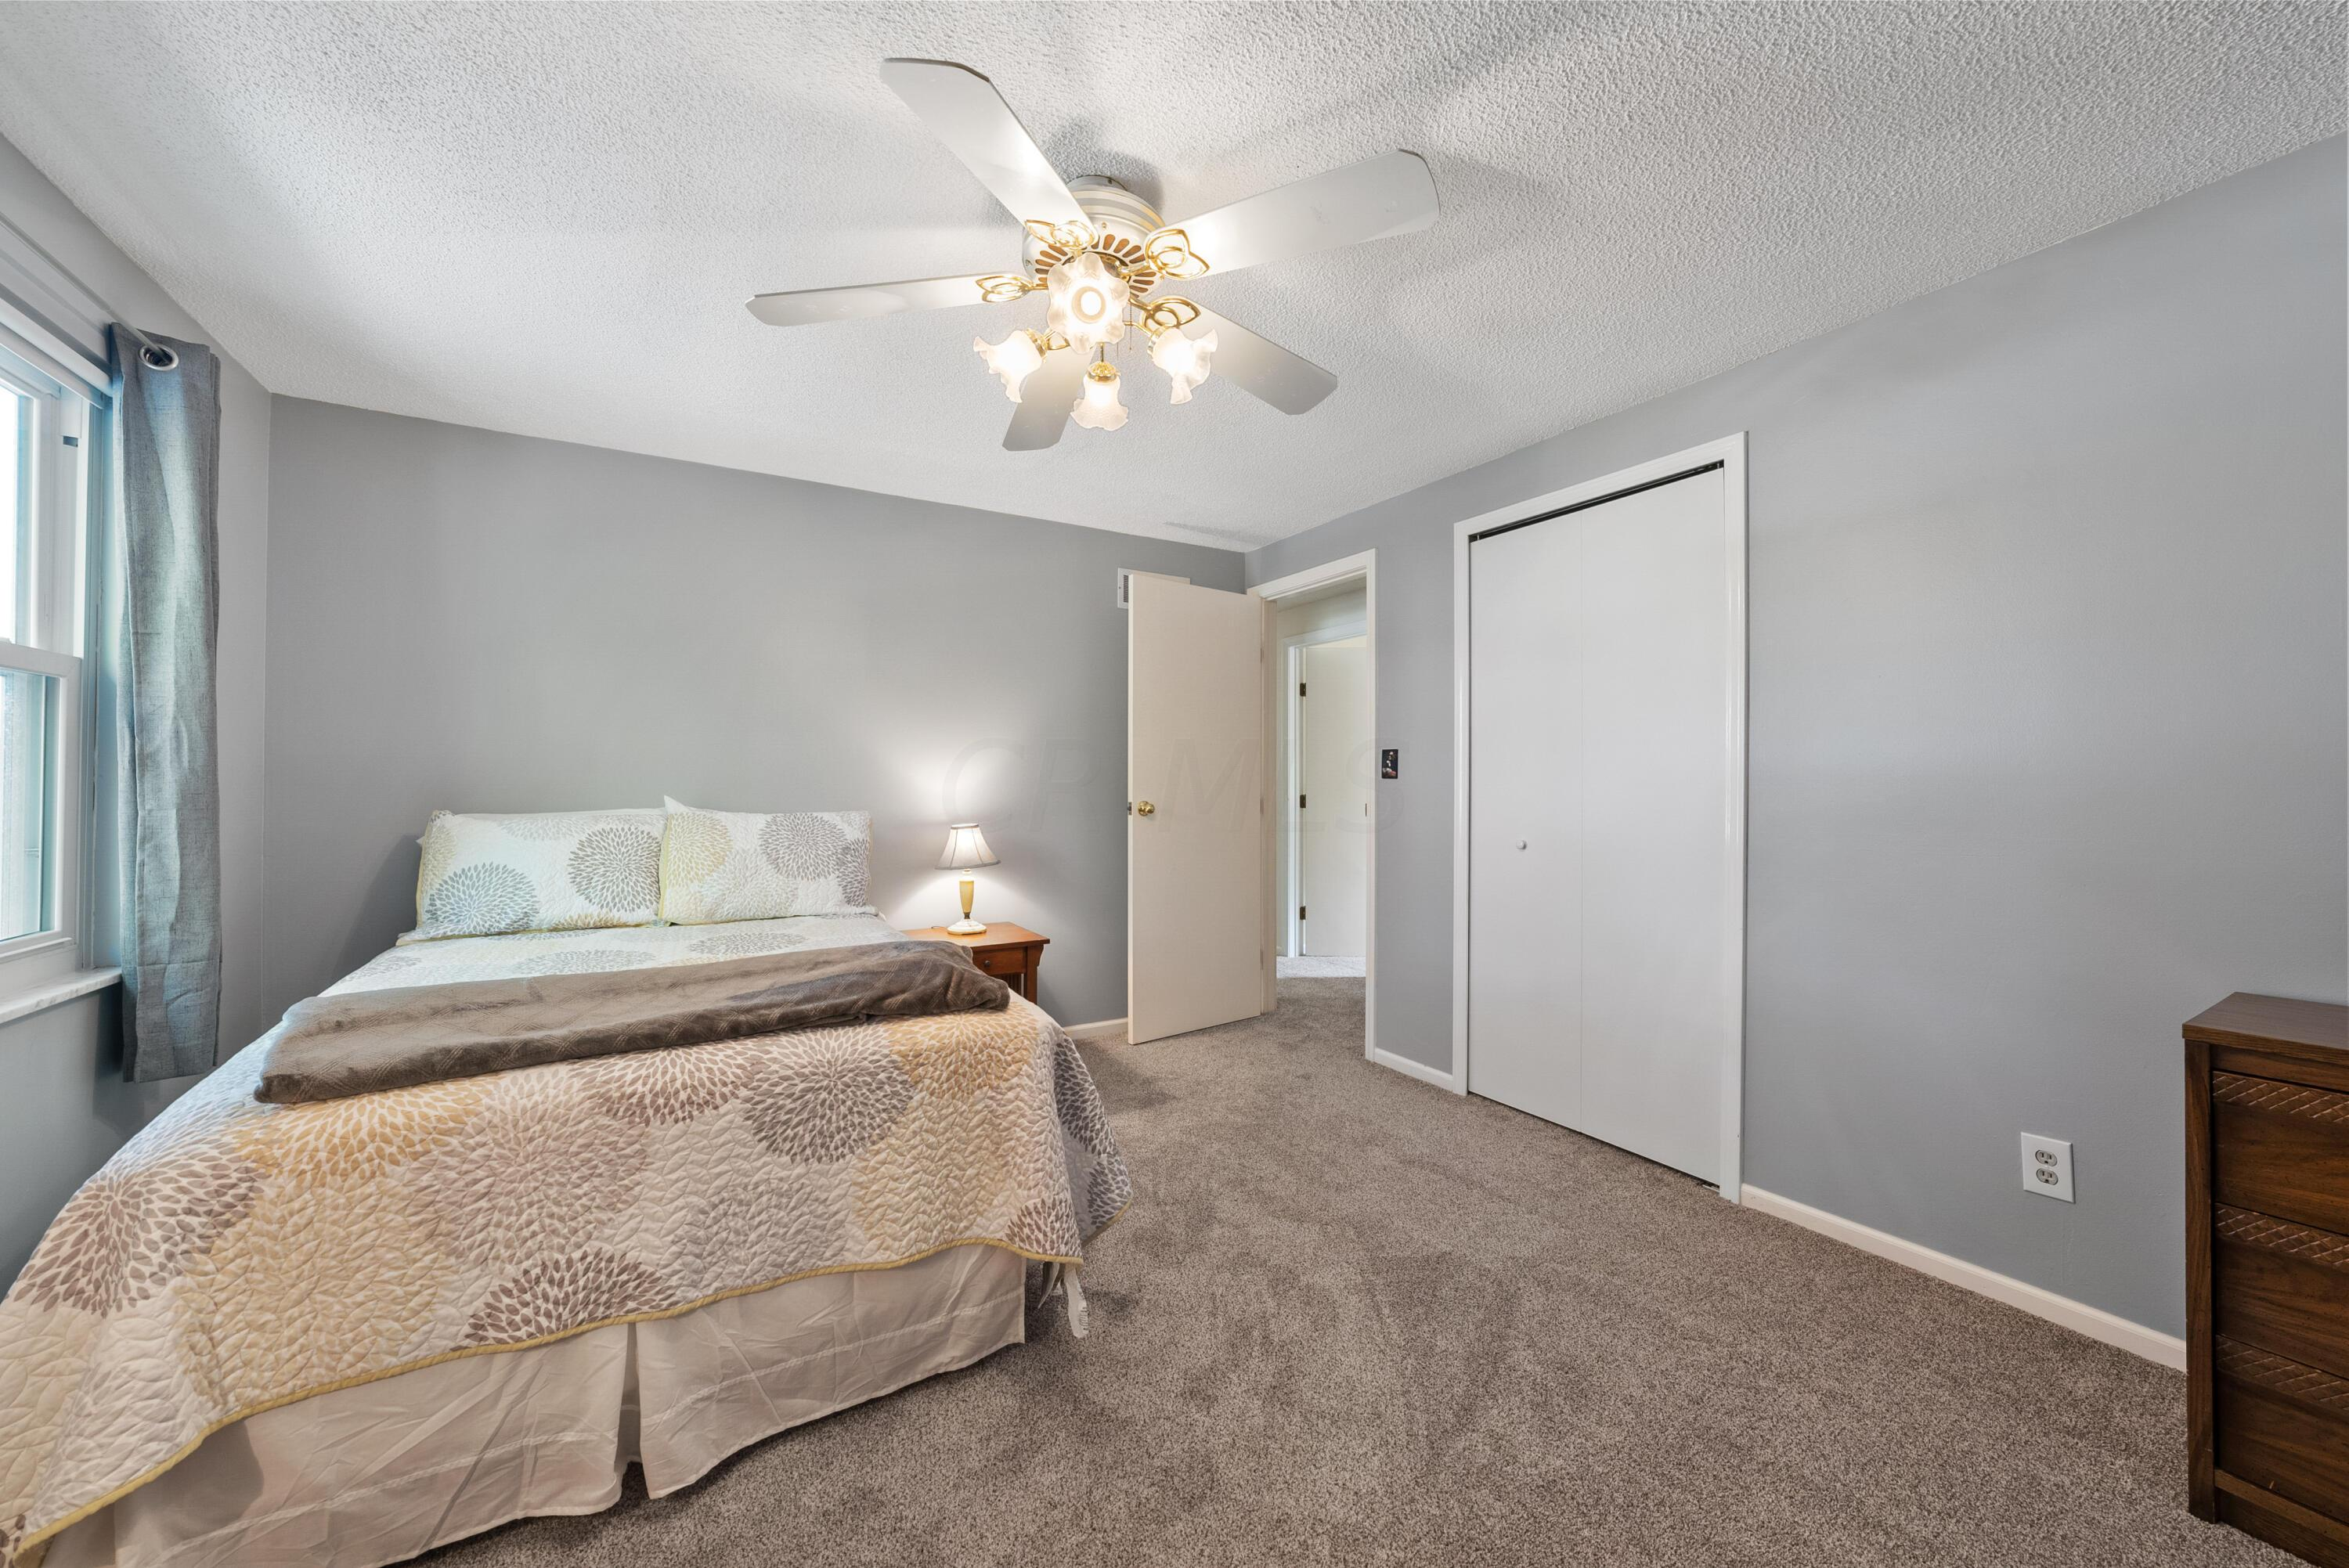 Bedroom Four with Neutral Decor